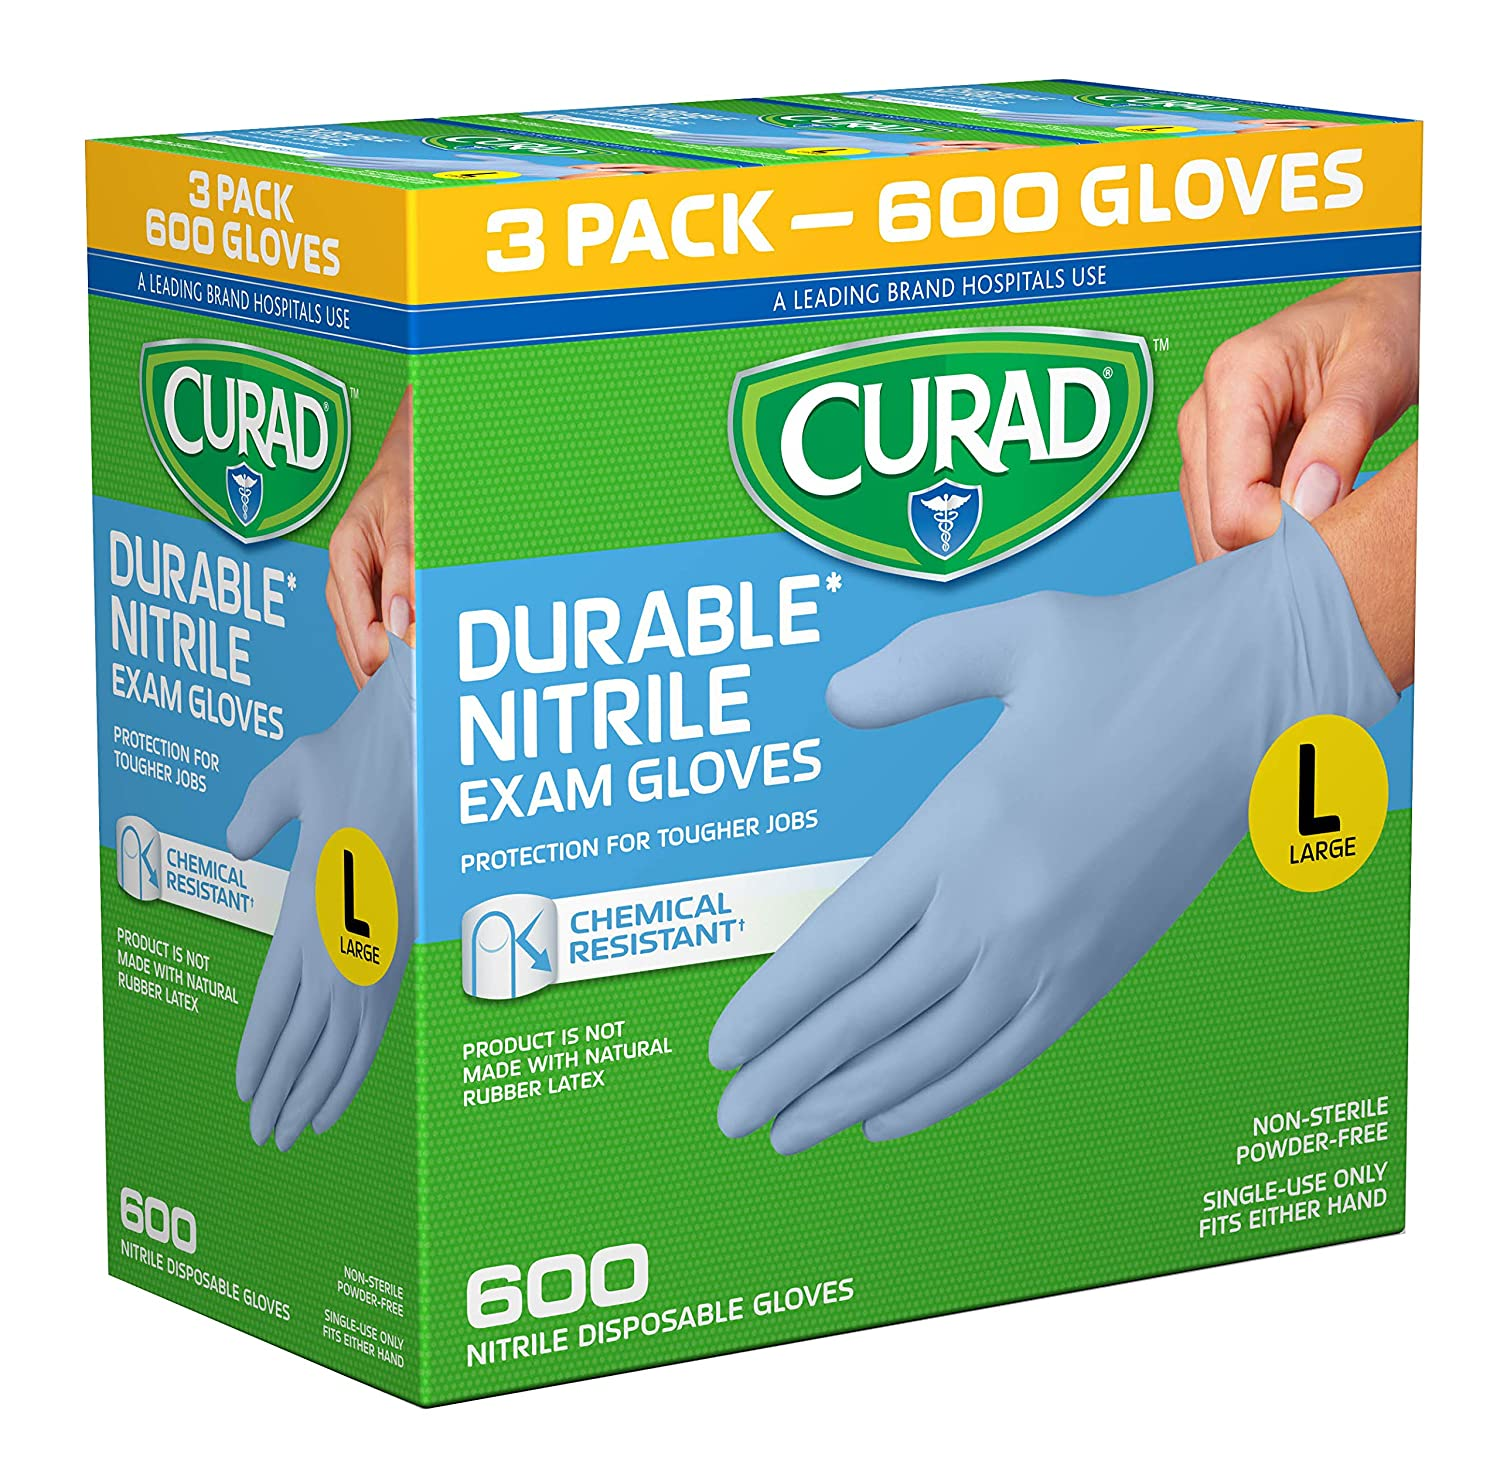 Curad - CURNT3RH San Diego Mall Disposable Indefinitely Nitrile Chemical Resist Exam Gloves